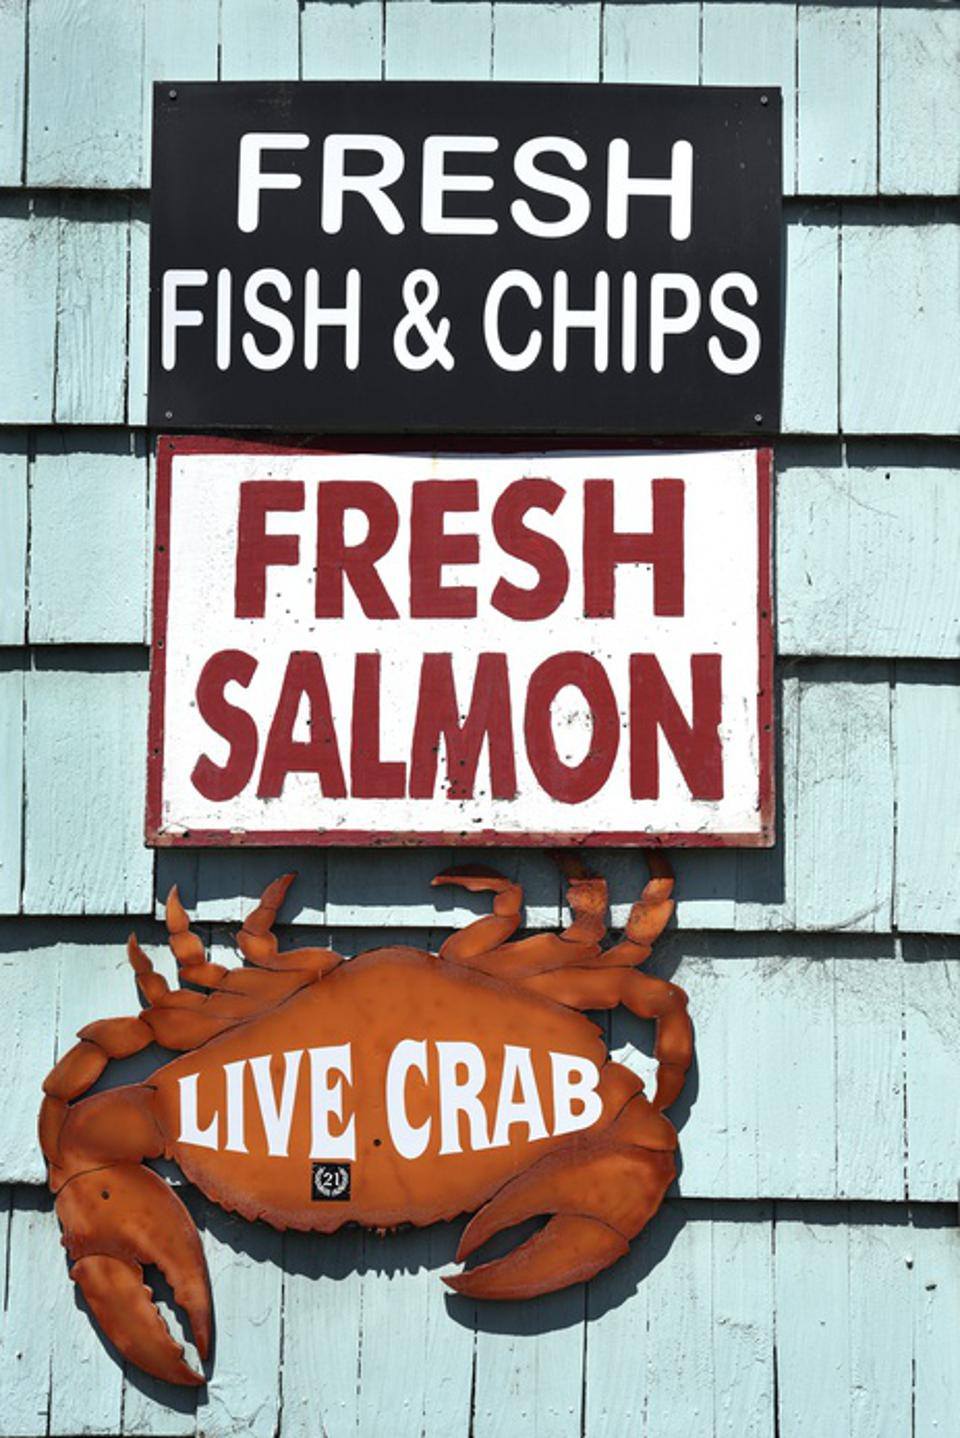 Restaurant sign advertises its seafood products